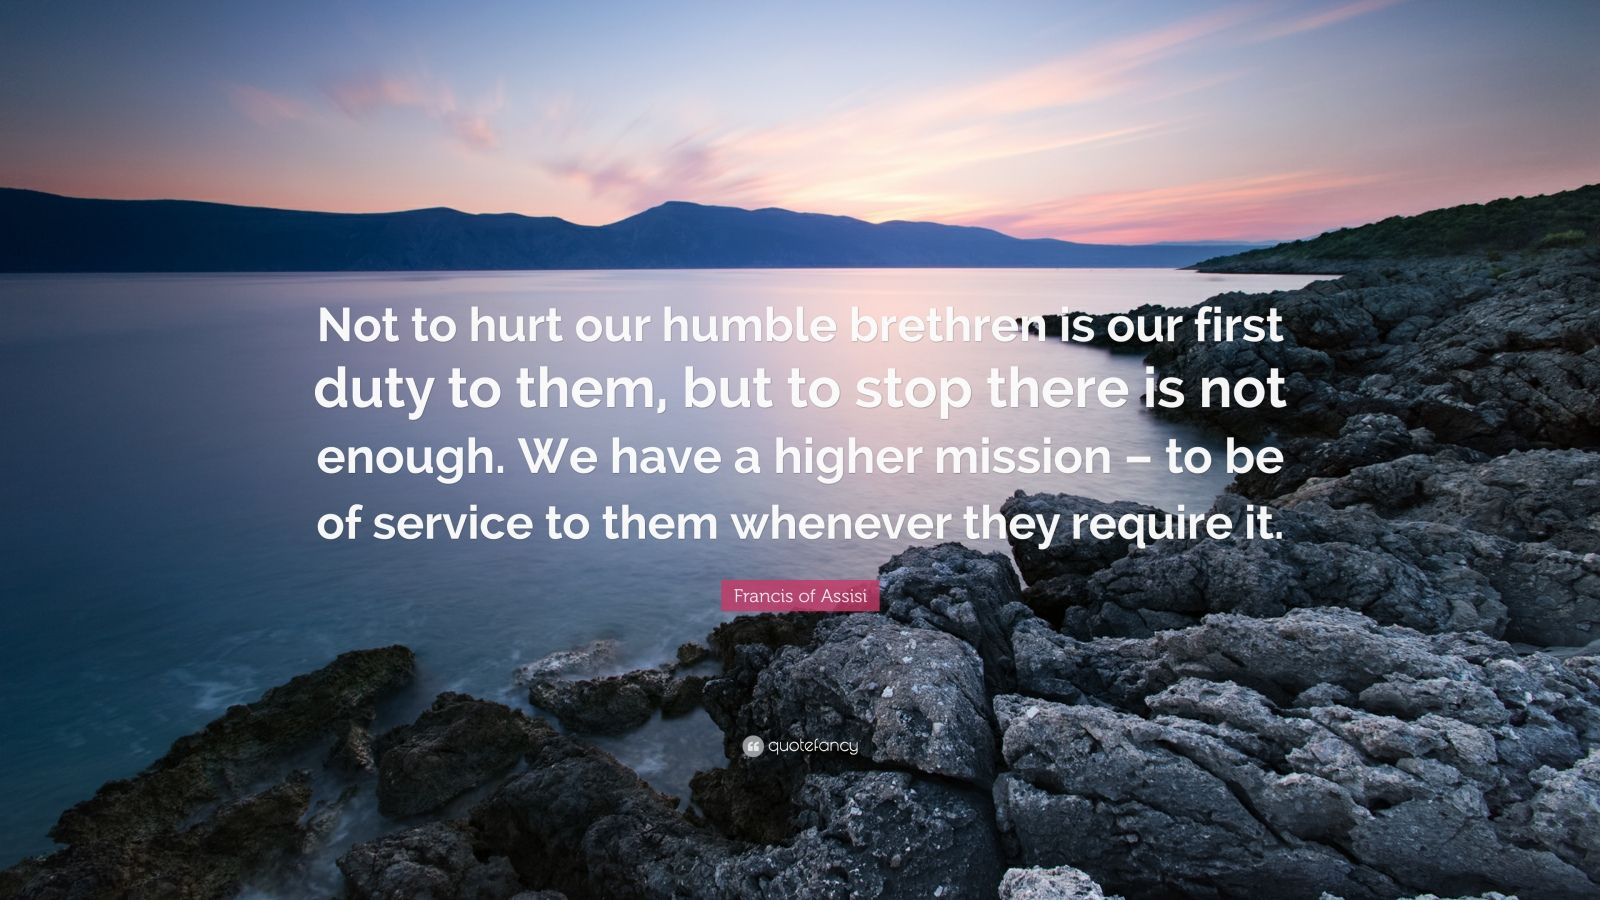 """Francis of Assisi Quote: """"Not to hurt our humble brethren is our first duty to them, but to stop there is not enough. We have a higher mission – to be of service to them whenever they require it."""""""